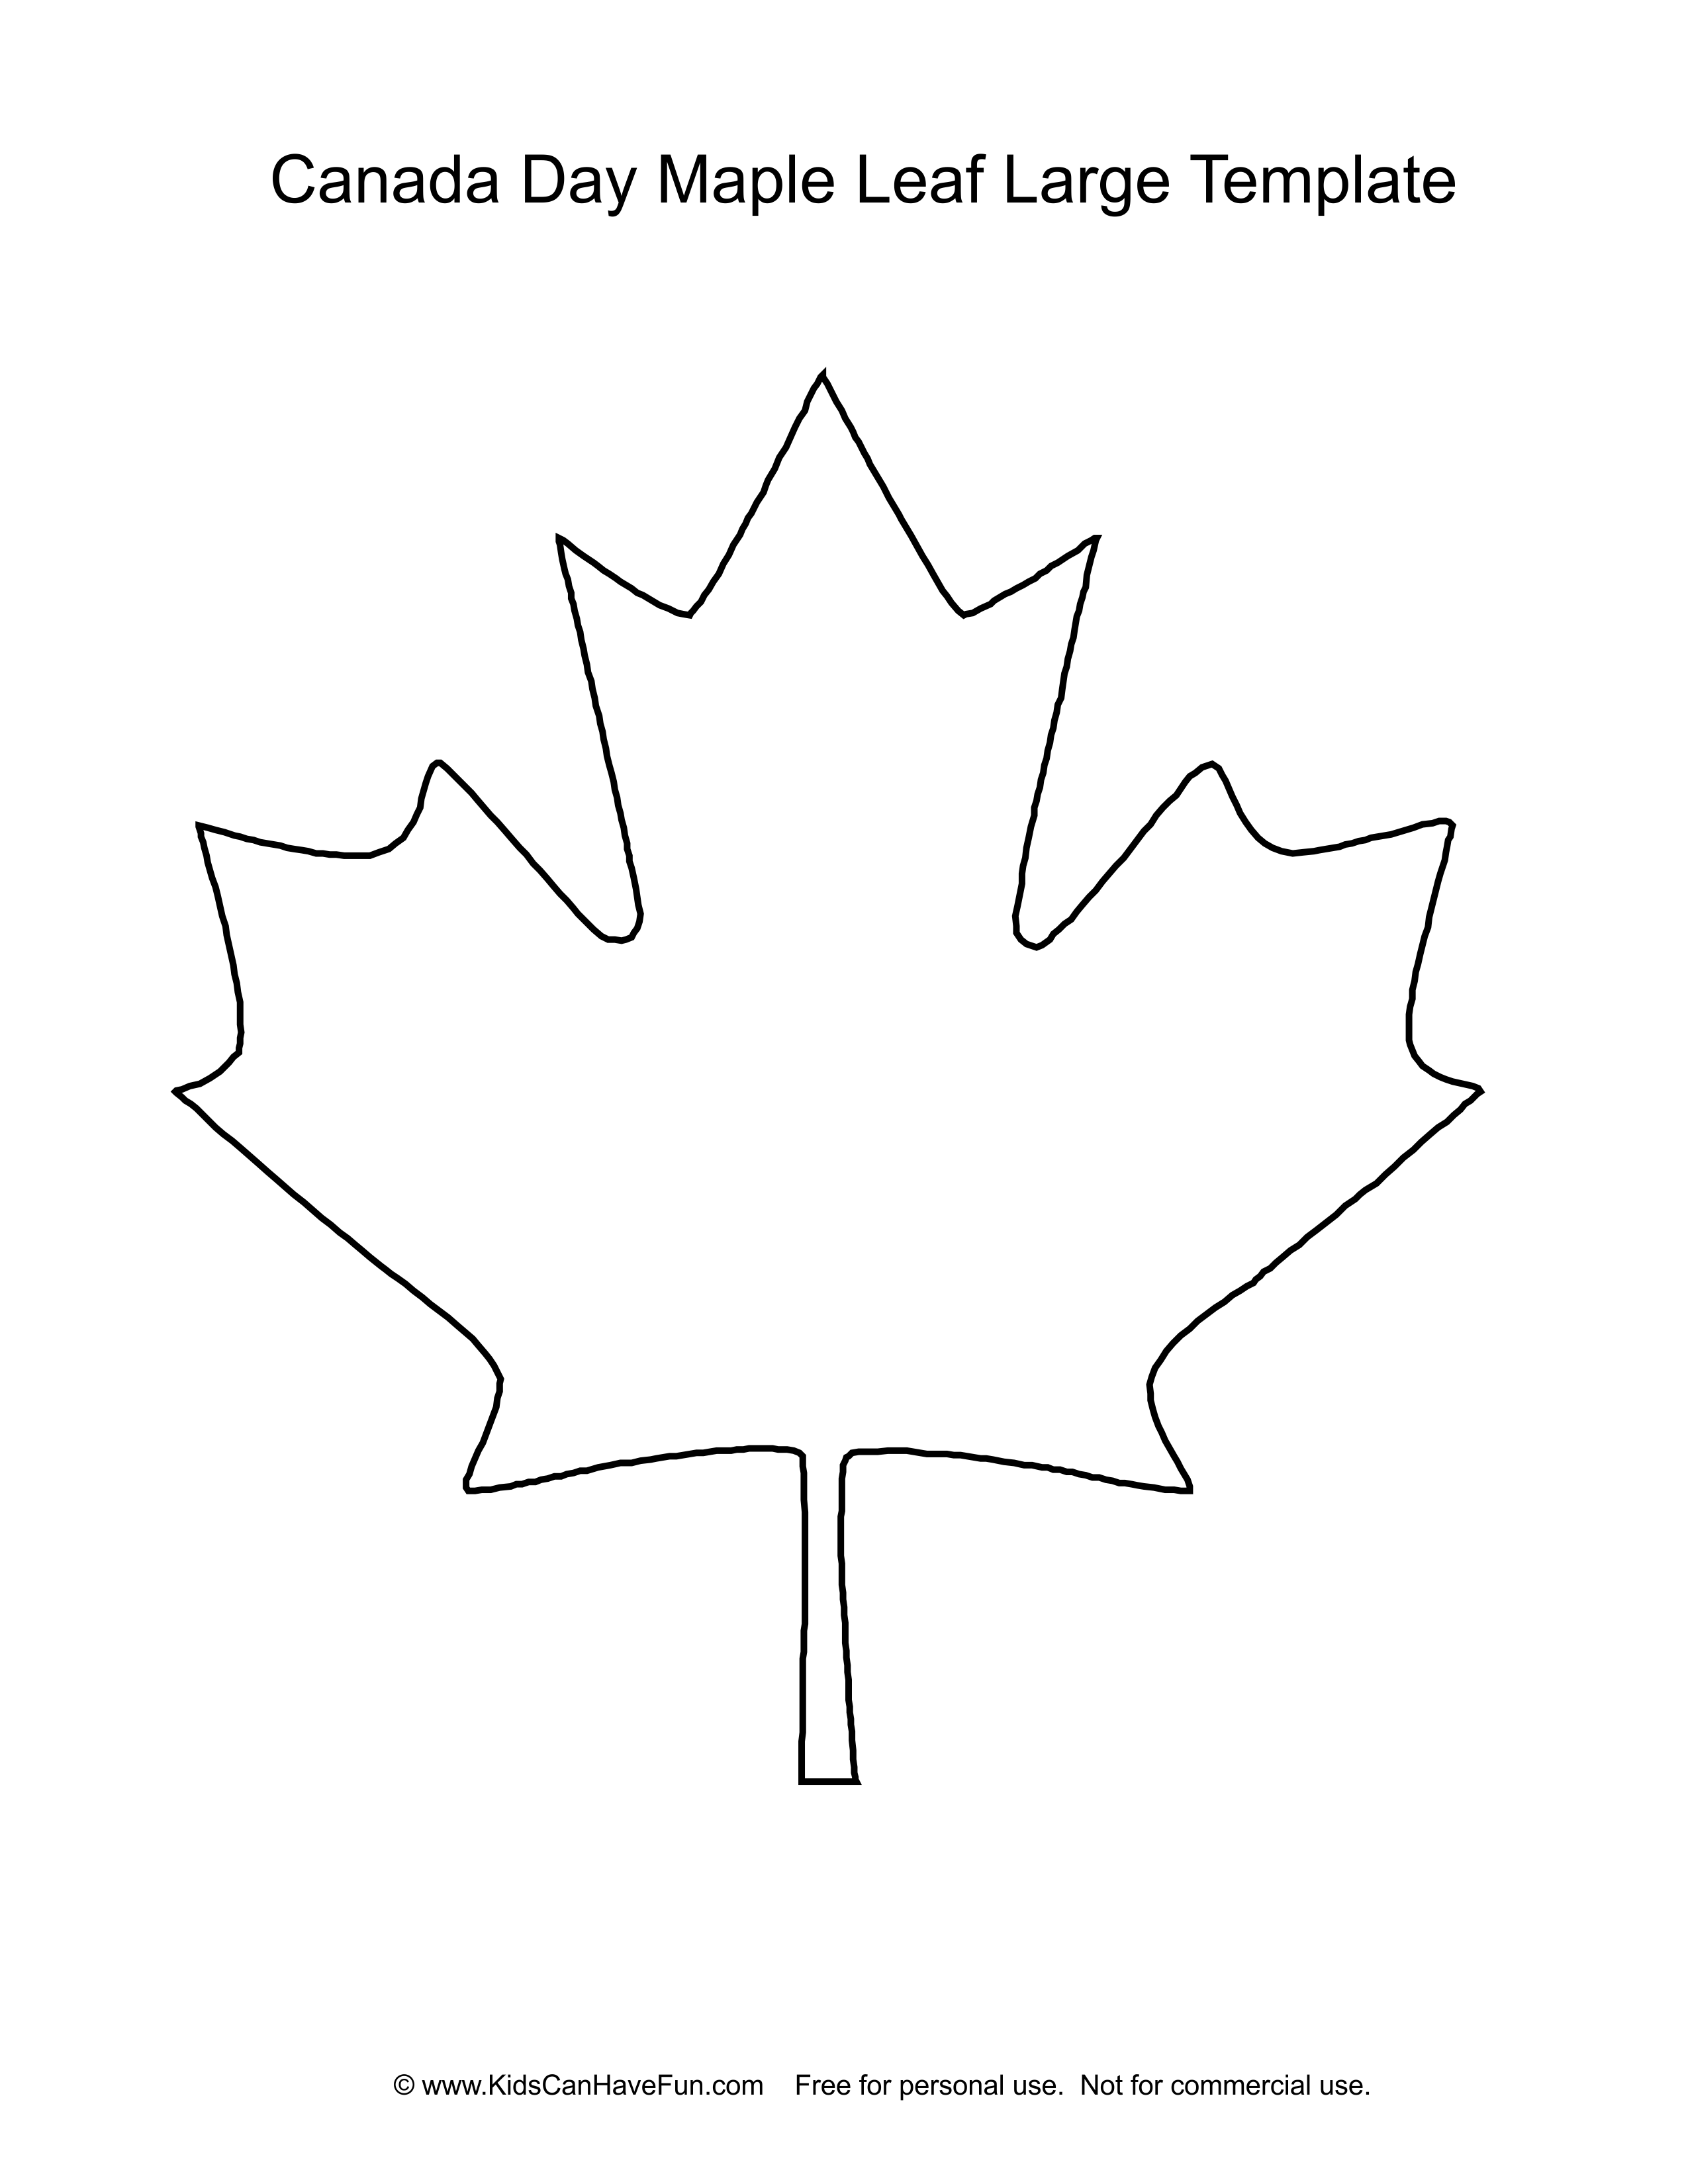 Canada Day Maple Leaf Template Large Http Www Kidscanhavefun Com Canadaday Activities Htm Canadaday Mapleleaf Maple Leaf Template Leaf Template Canada Day